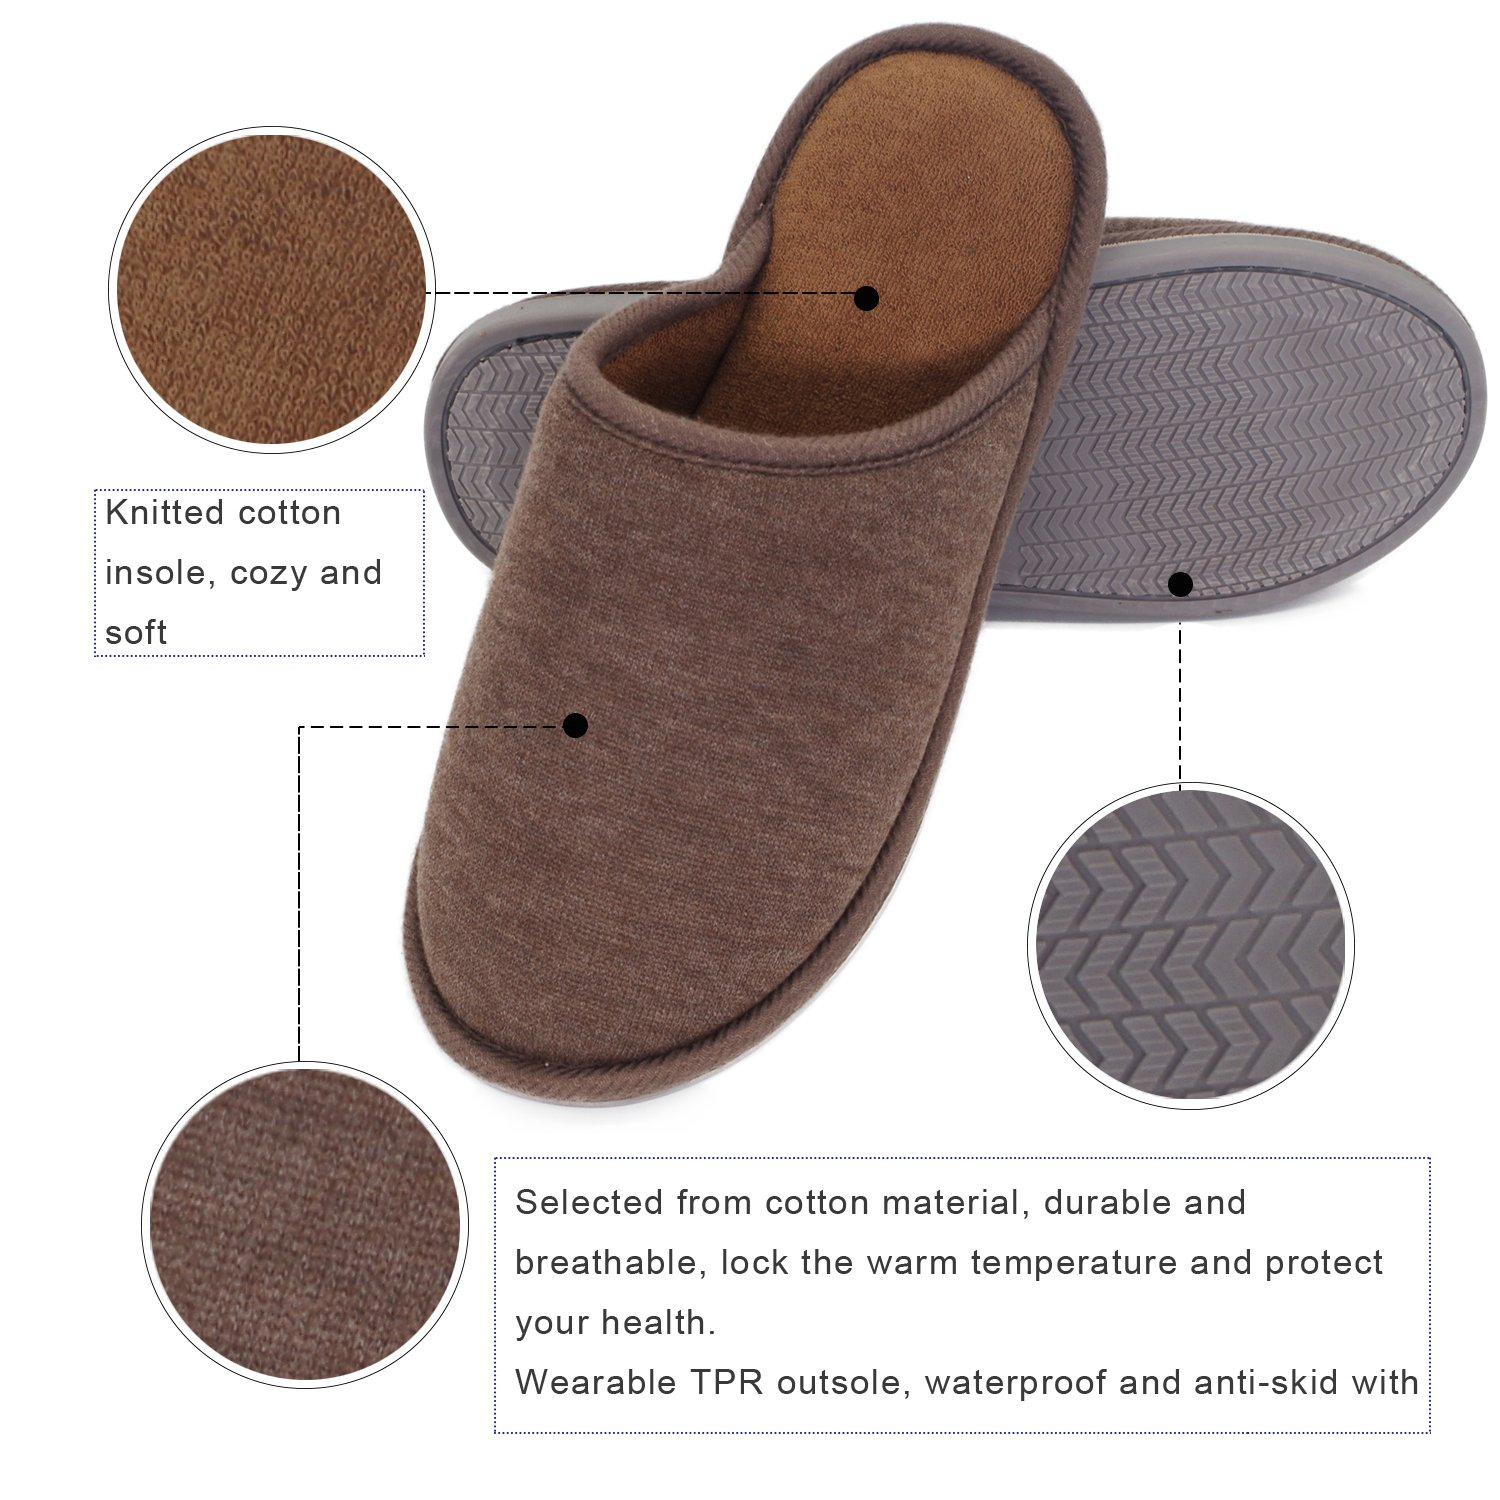 Moodeng House Slippers Memory Foam For Women Men Anti-Skid Indoor Slide Shoes Washable Lightweight Ladies Home Slipper (US 7-8.5 -Men, Brown) by Moodeng (Image #4)